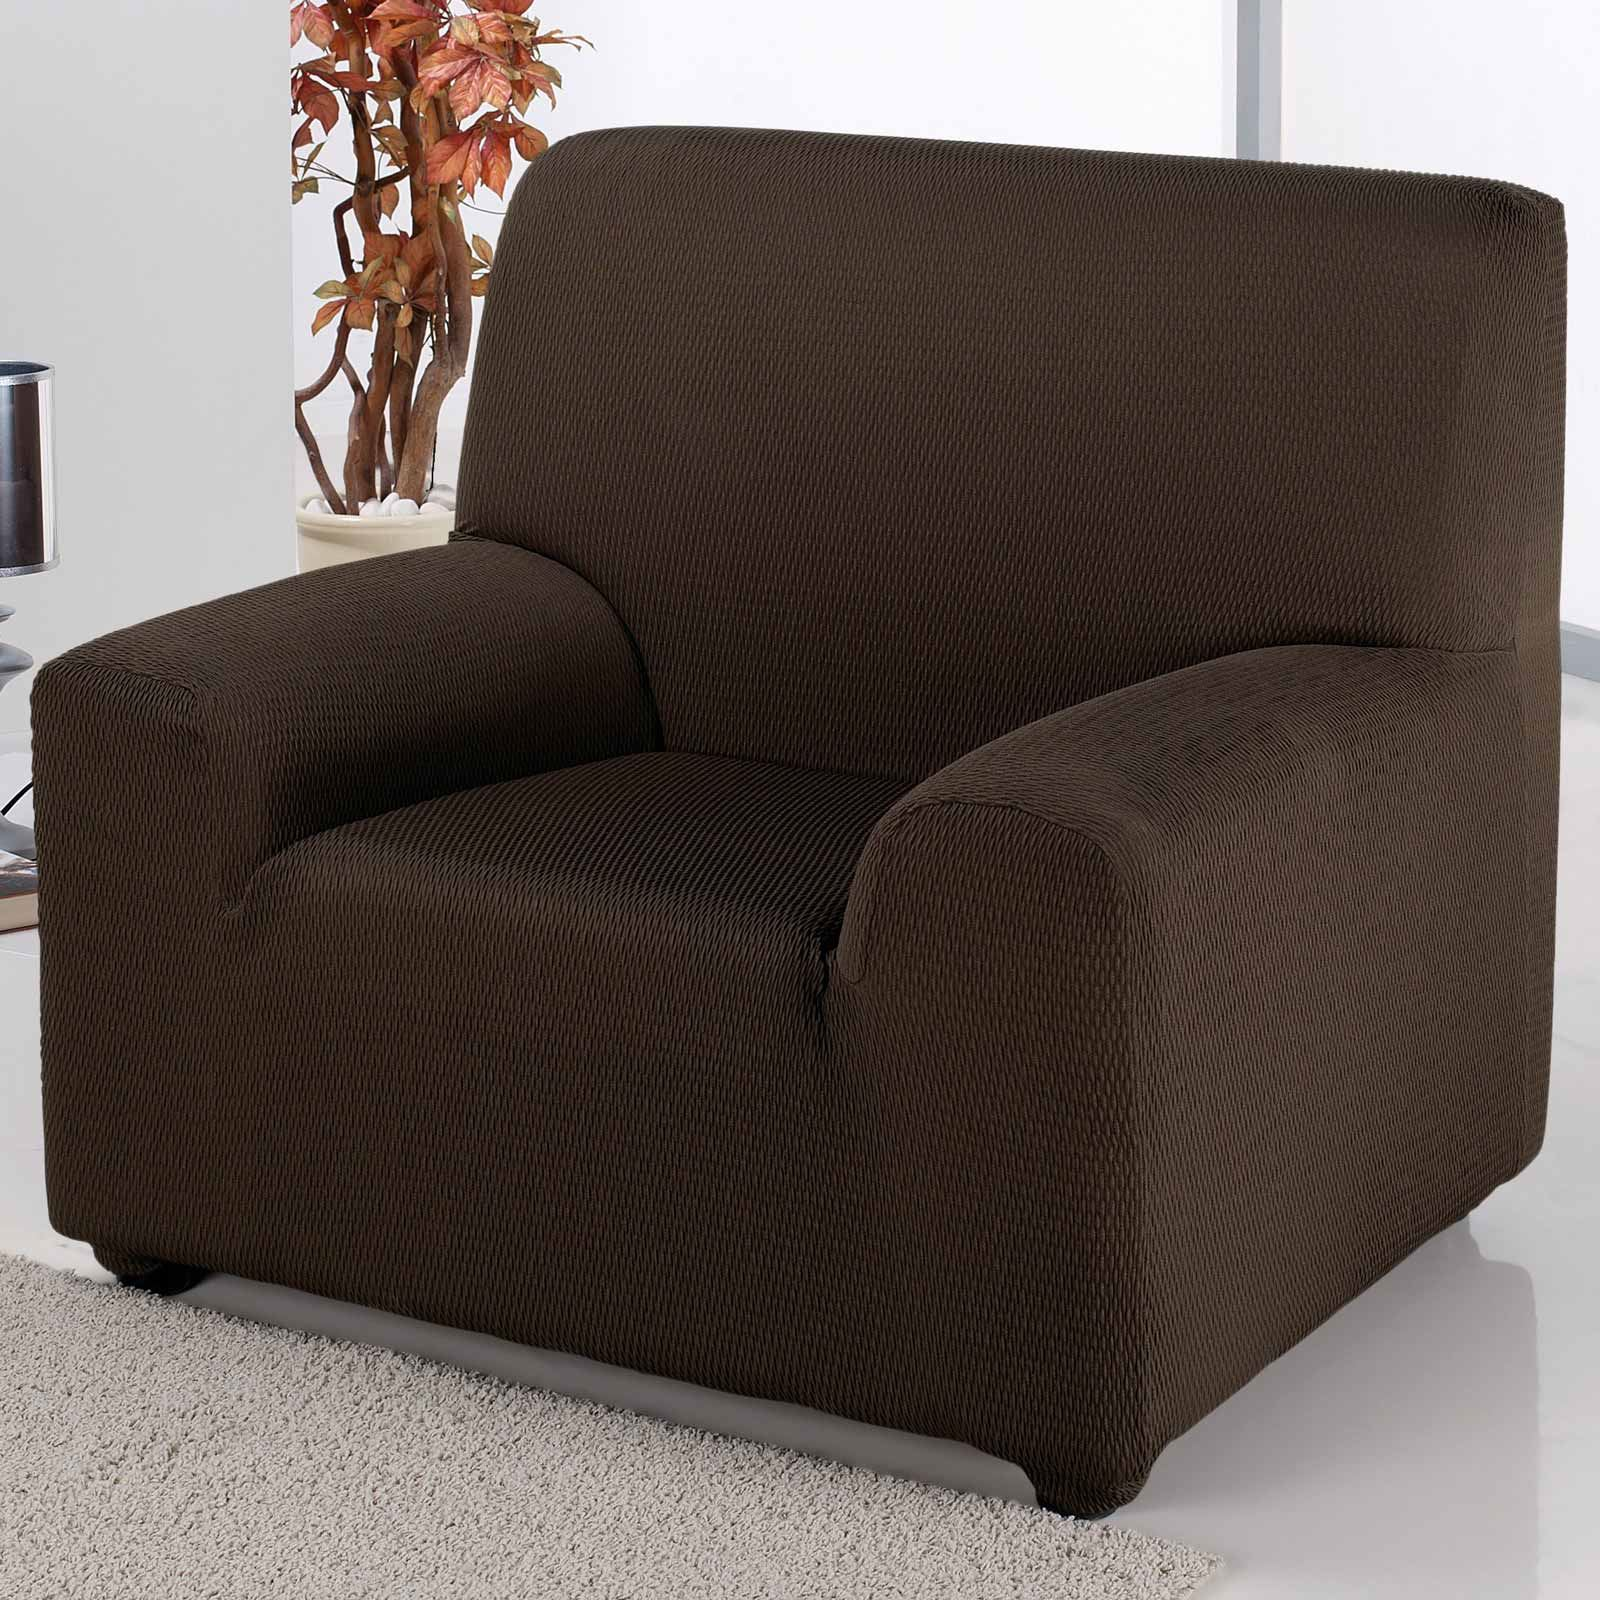 Stretch Sofa Covers Easy Fit Couch Armchair 1 2 3 Seater